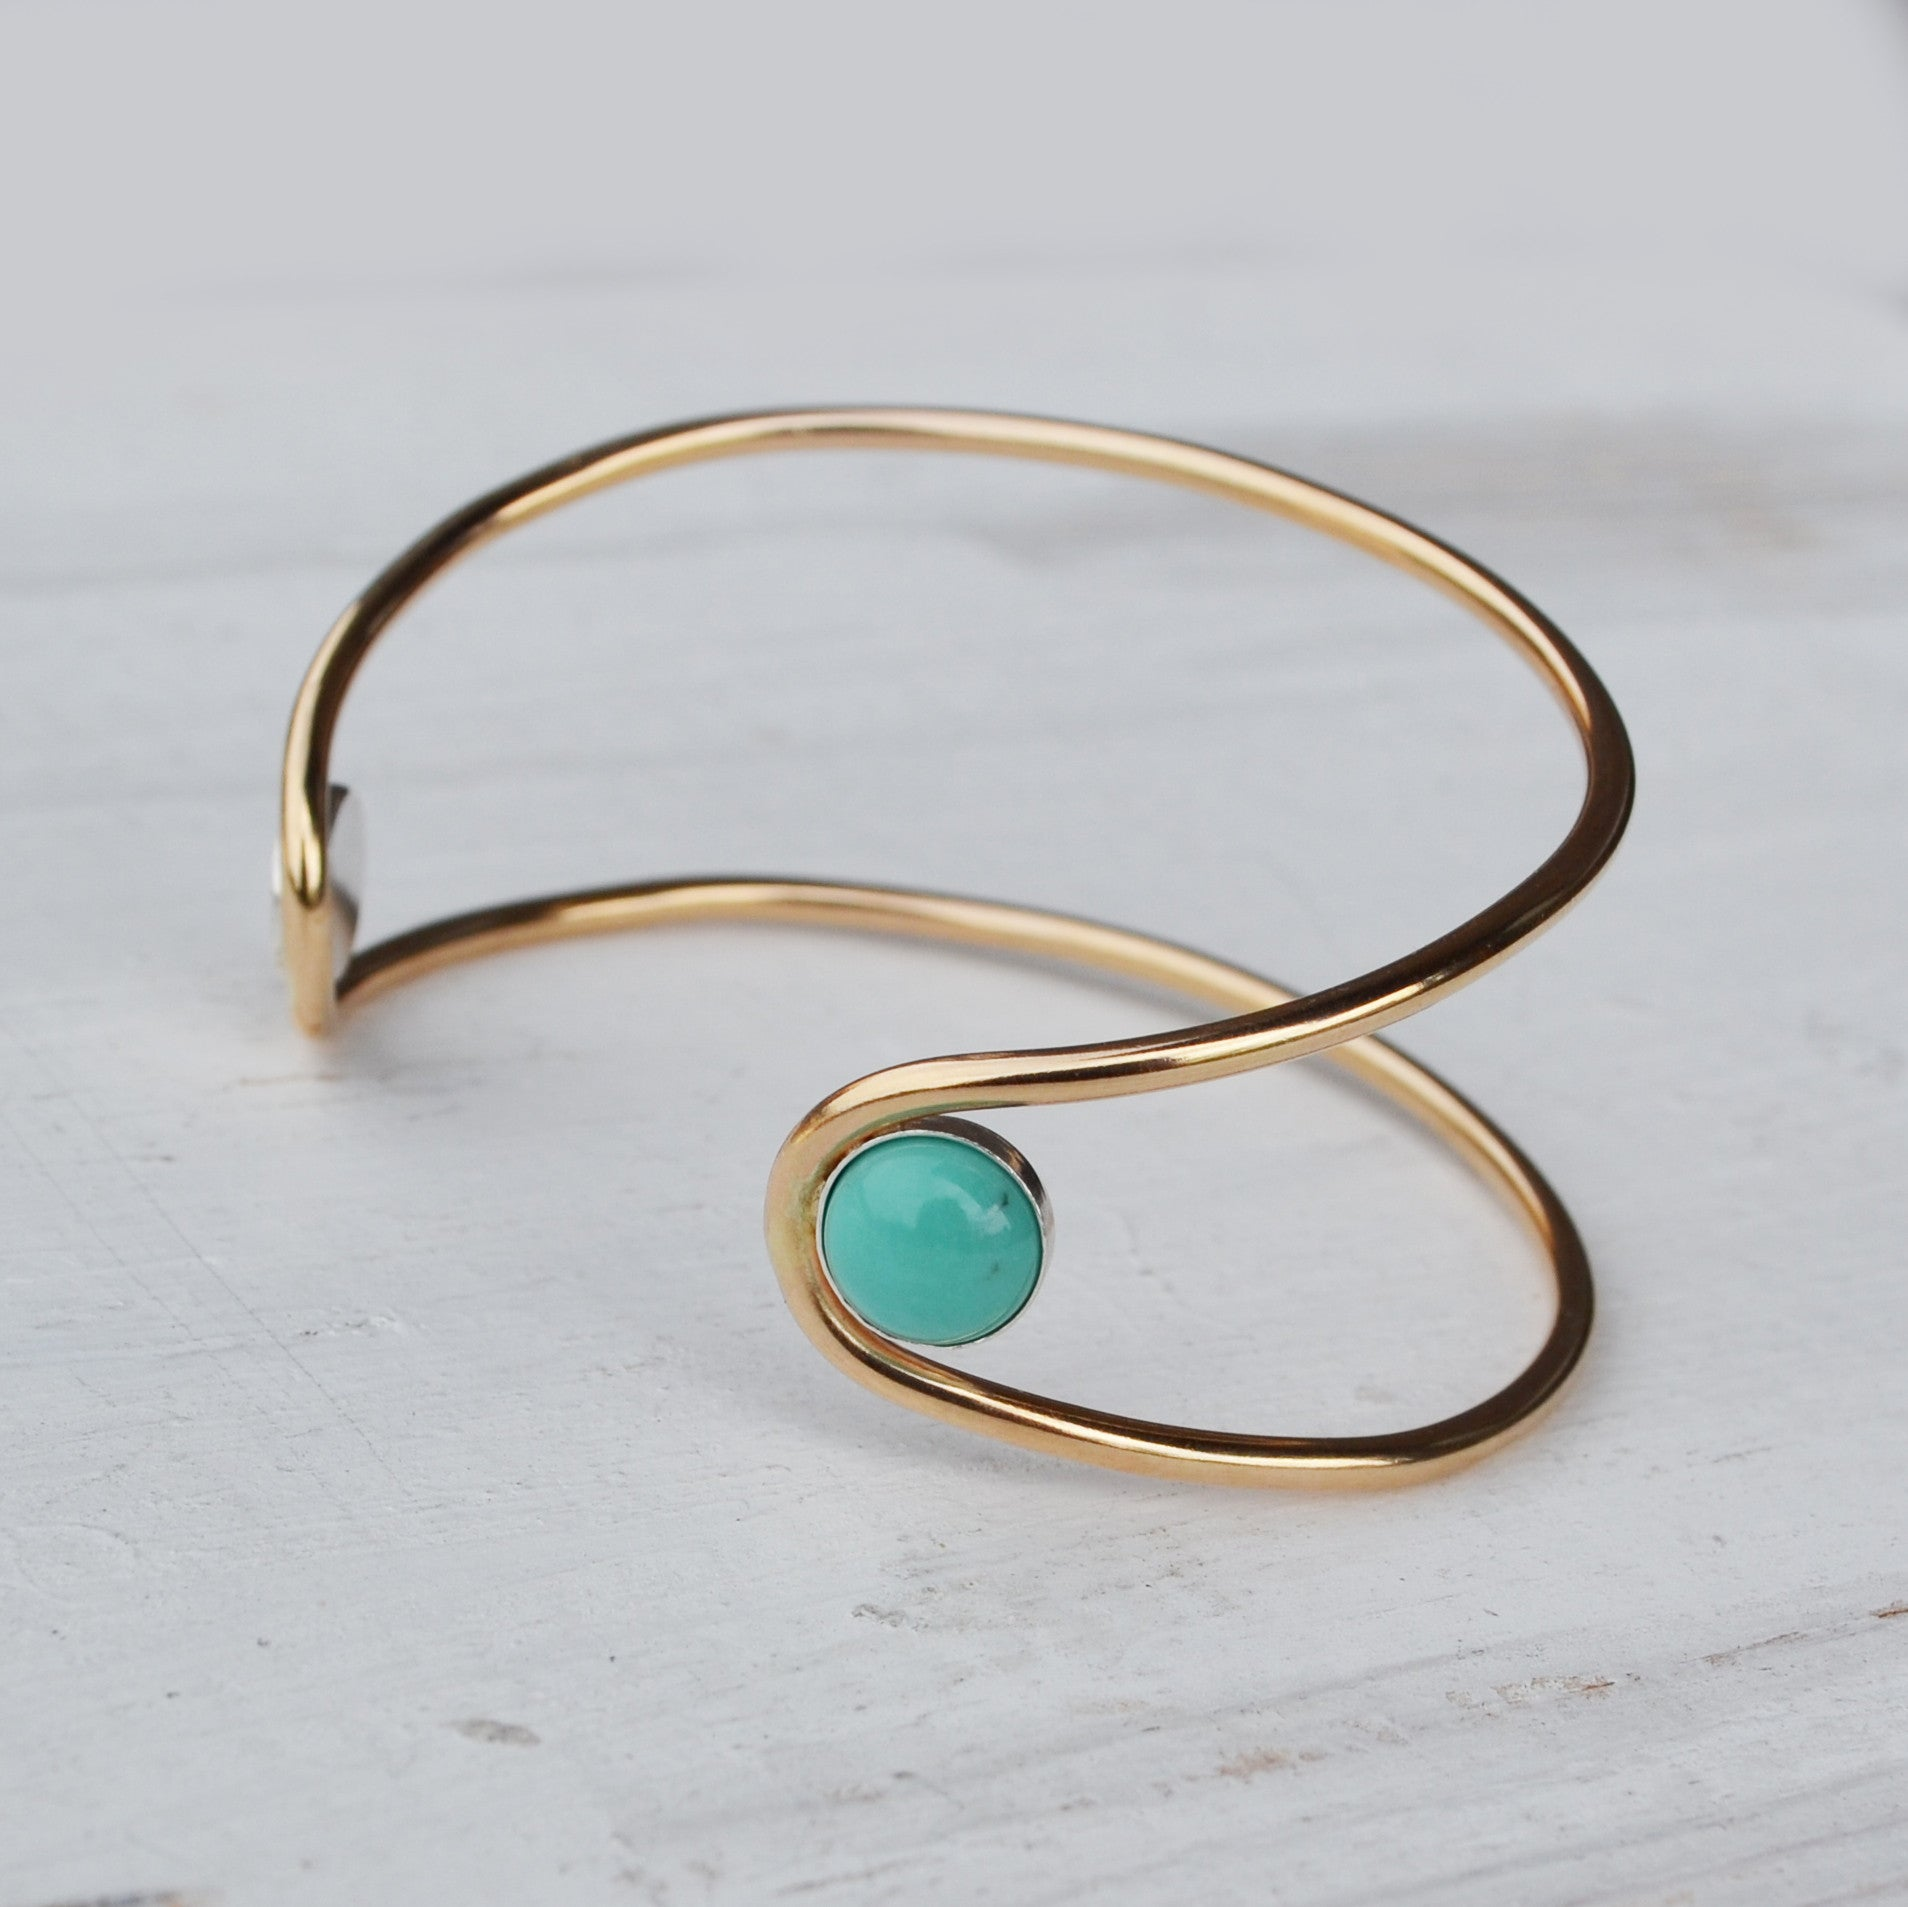 Double Orbit Bracelet, Turquoise, Gold or Silver